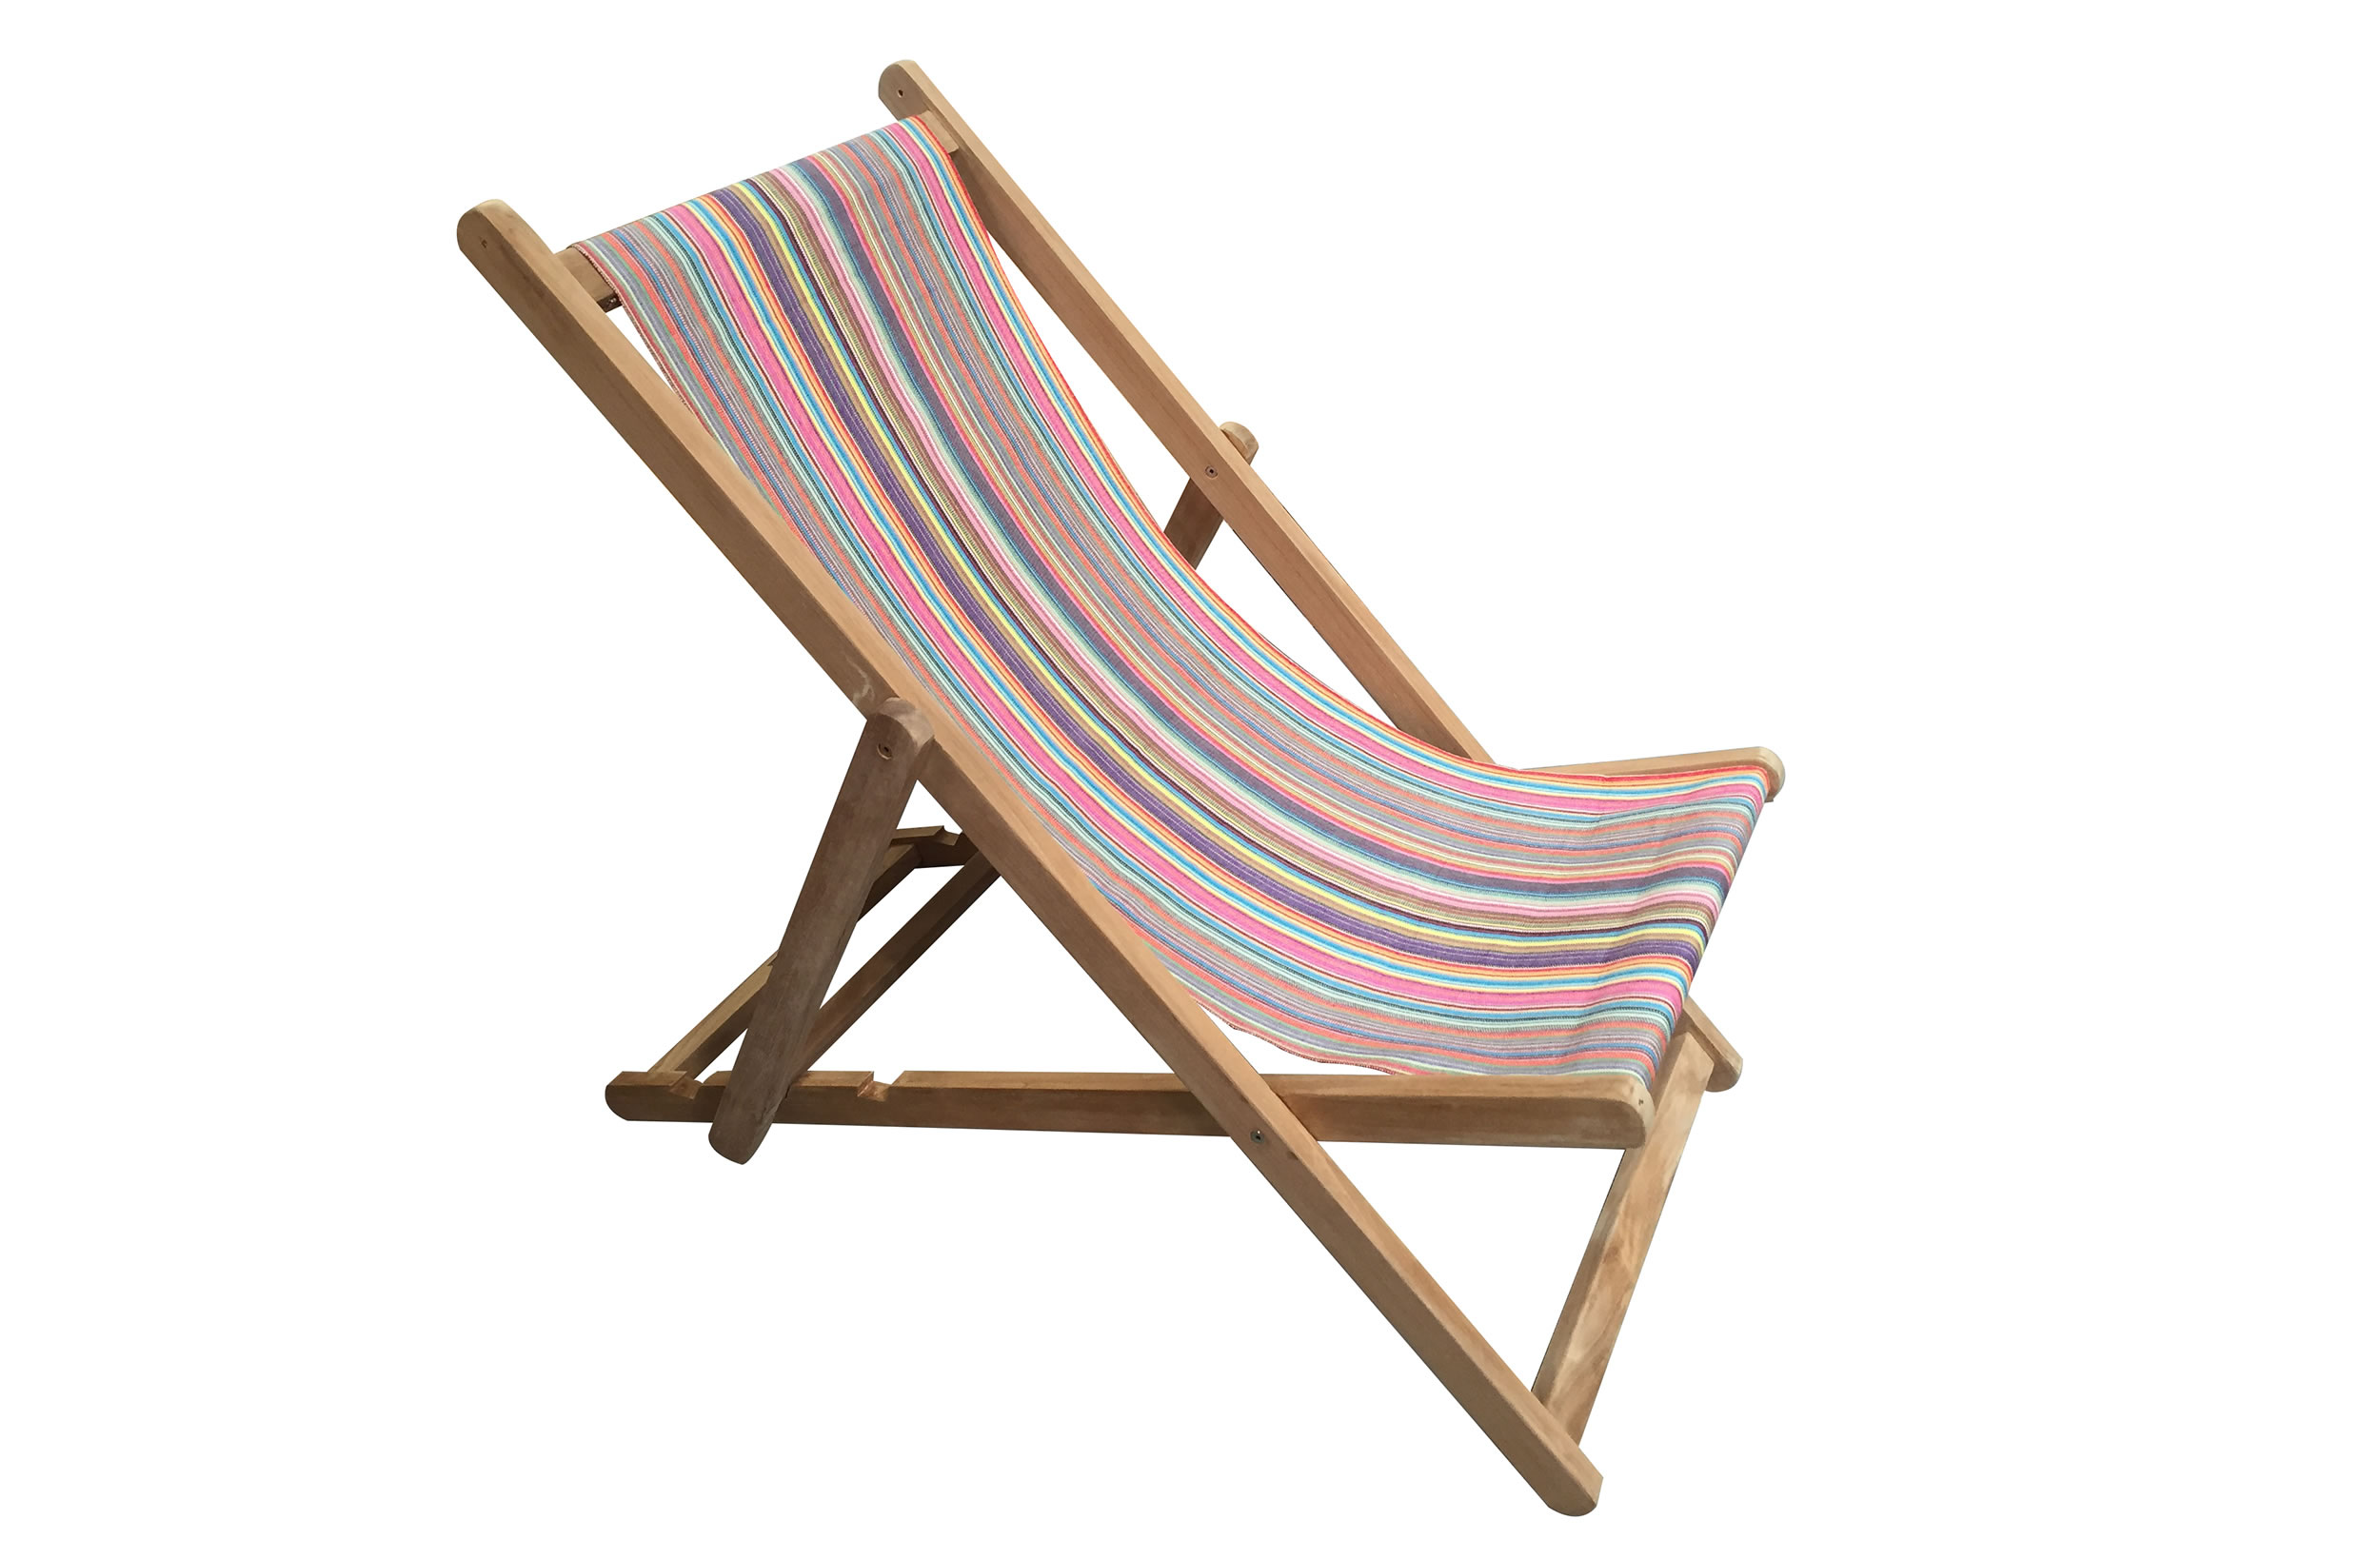 deckchair teak cheap good dilego divero deckchair teak with deckchair teak with deckchair teak. Black Bedroom Furniture Sets. Home Design Ideas